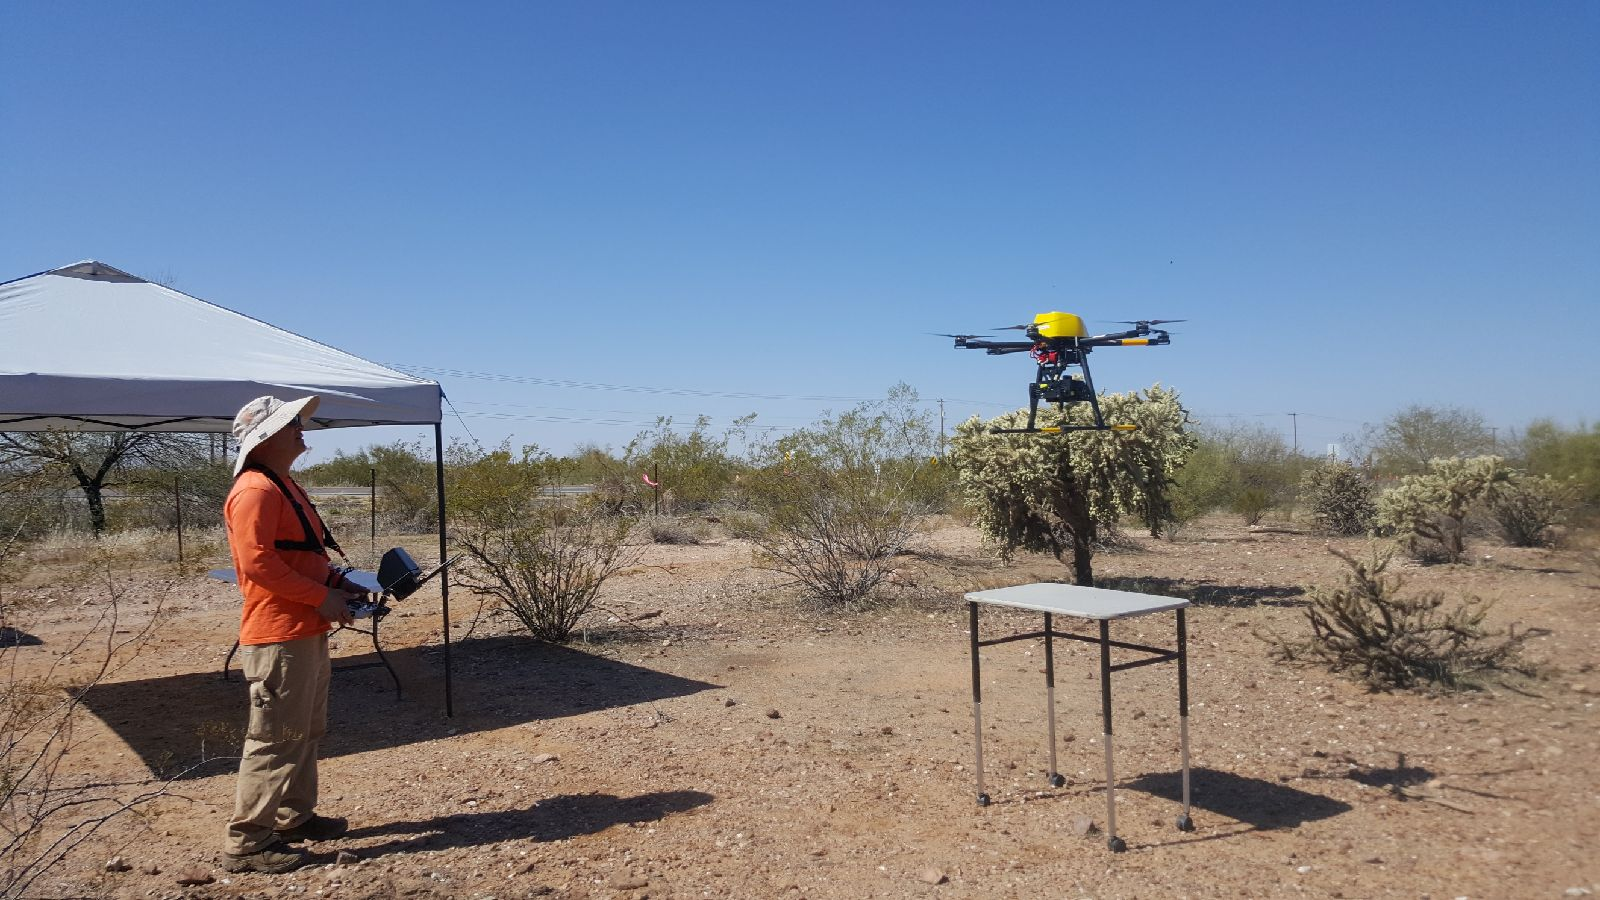 ADOT's first drone in use near US 60 Gold Canyon - March 2018